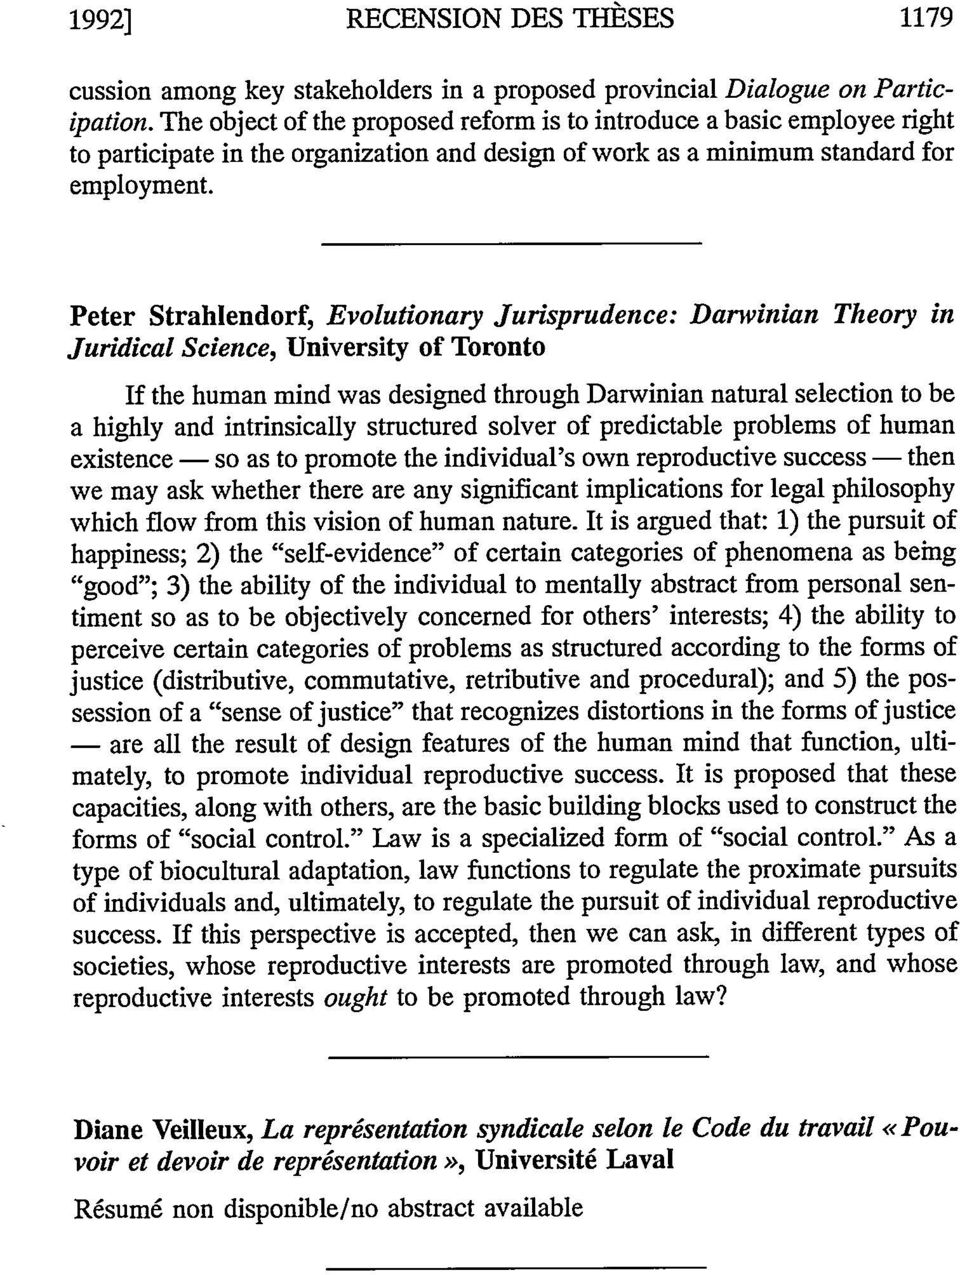 Peter Strahlendorf, Evolutionary Jurisprudence: Darwinian Theory in Juridical Science, University of Toronto If the human mind was designed through Darwinian natural selection to be a highly and